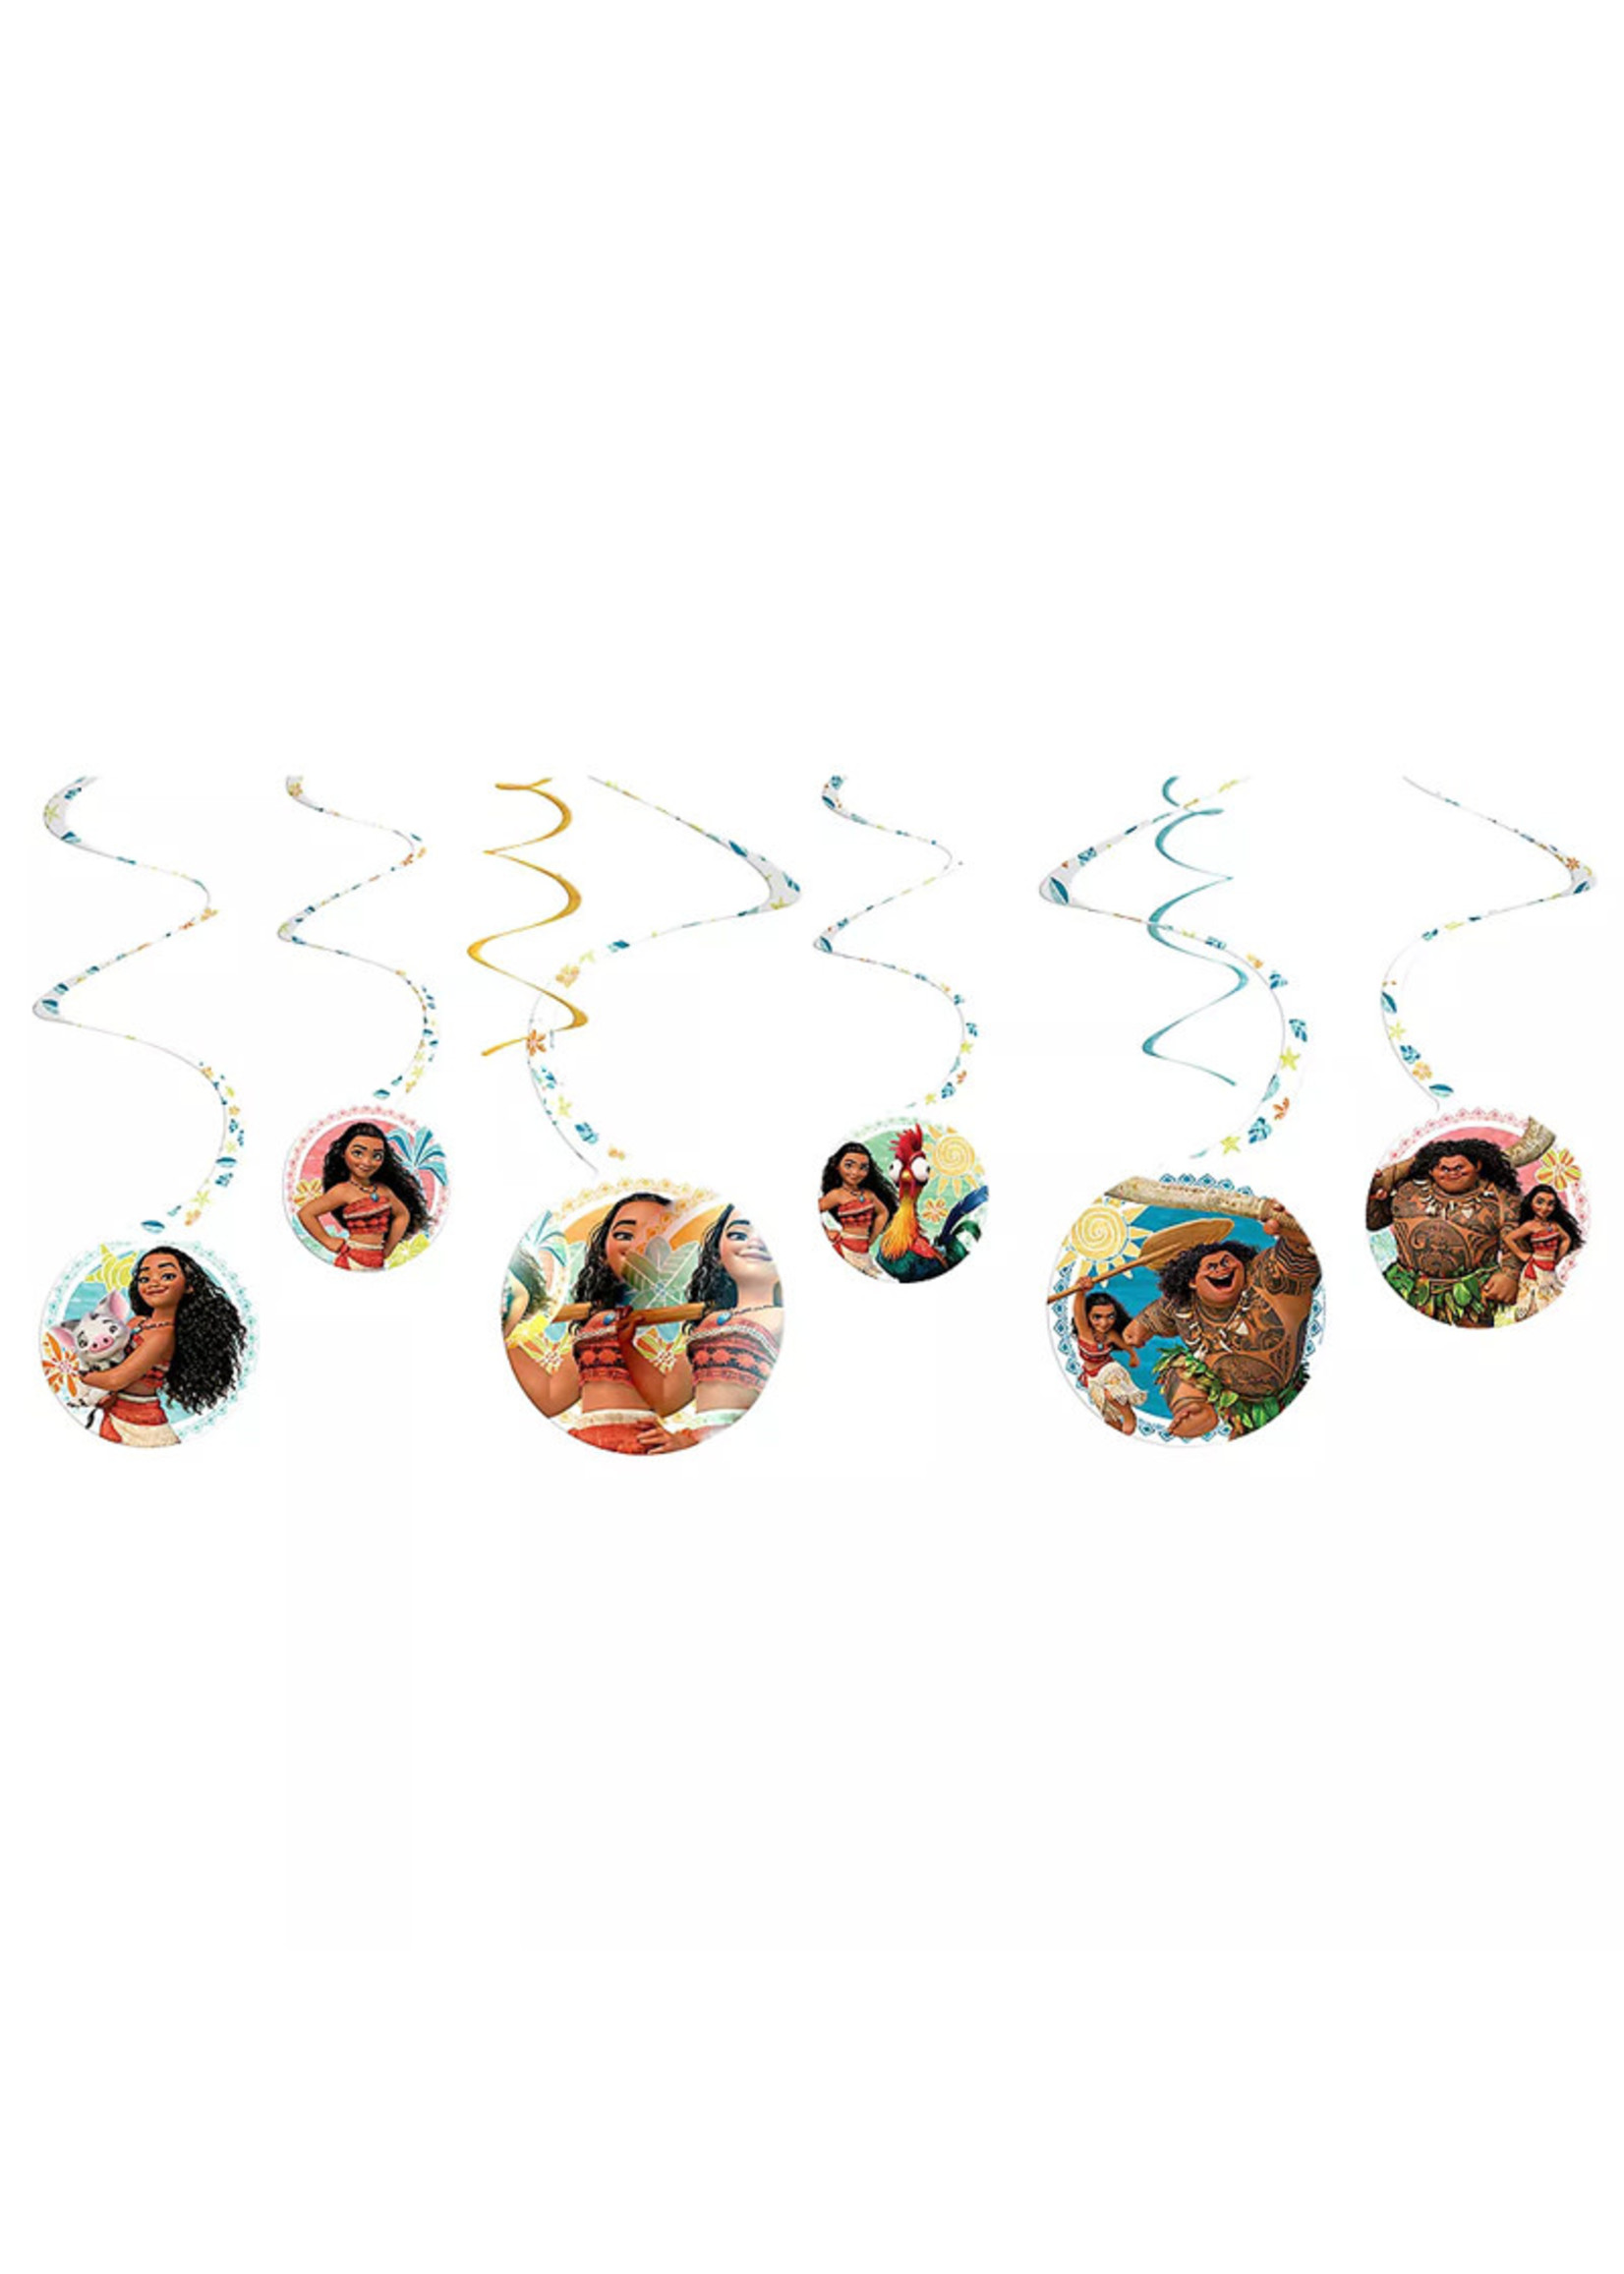 Moana Swirl Decorations 8ct